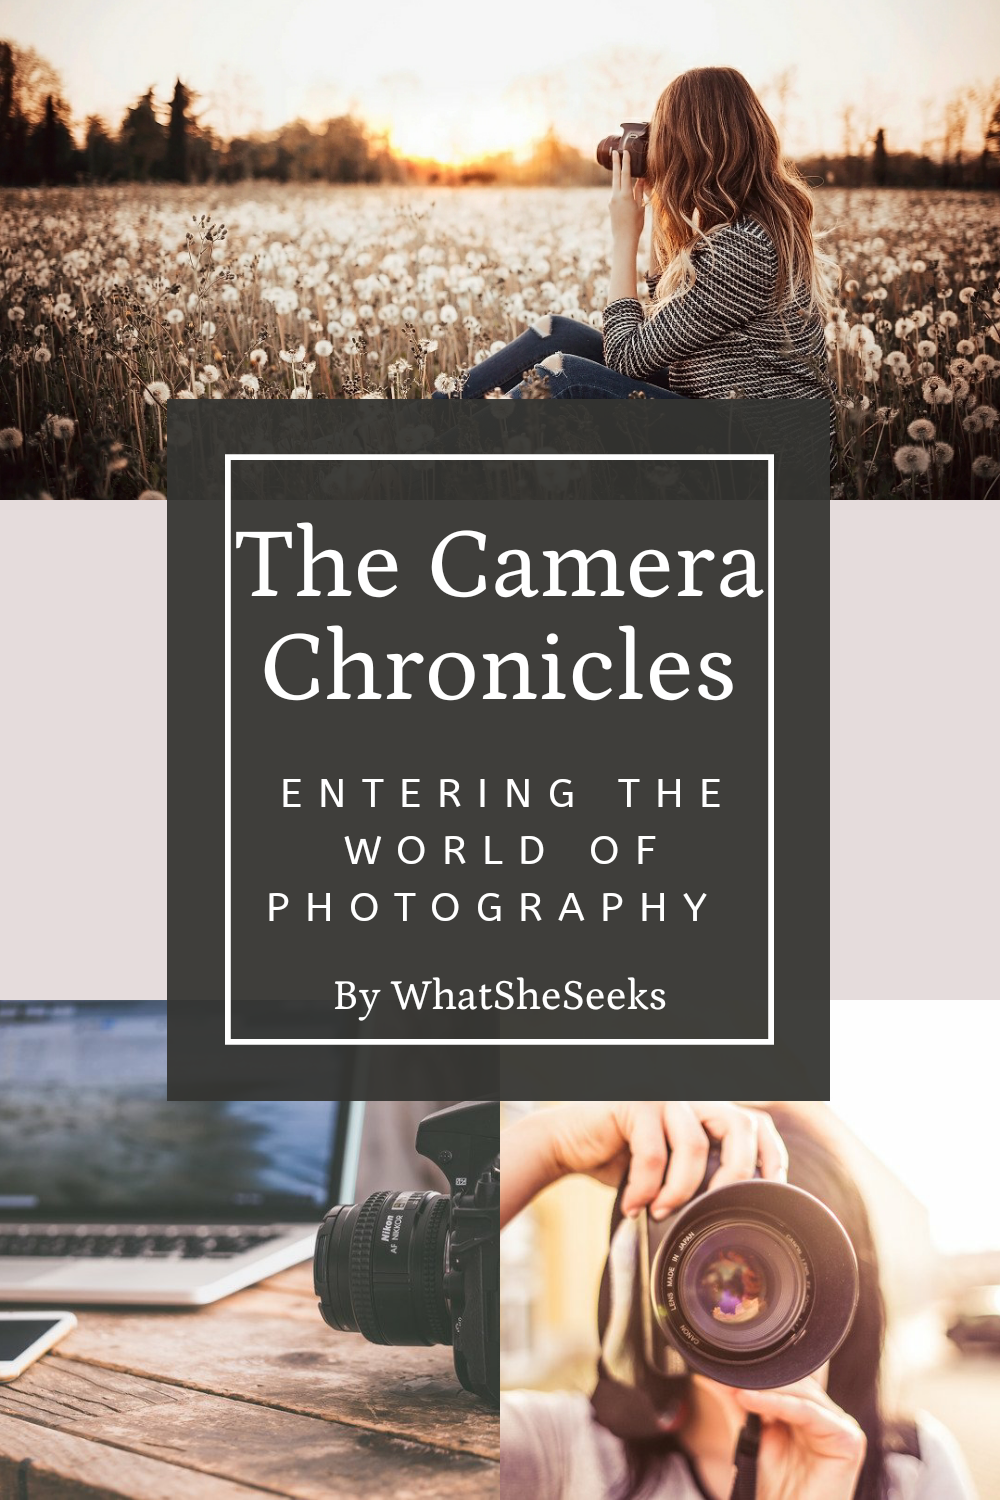 Taking one of your hobbies to the next level sparks a flurry of learning and excitement but how do you break the mould of old, trusty habits? Read about the journey from camera phone to budding photographer and find inspiration to enter the world of travel photography. Read more.. #whatsheseeks